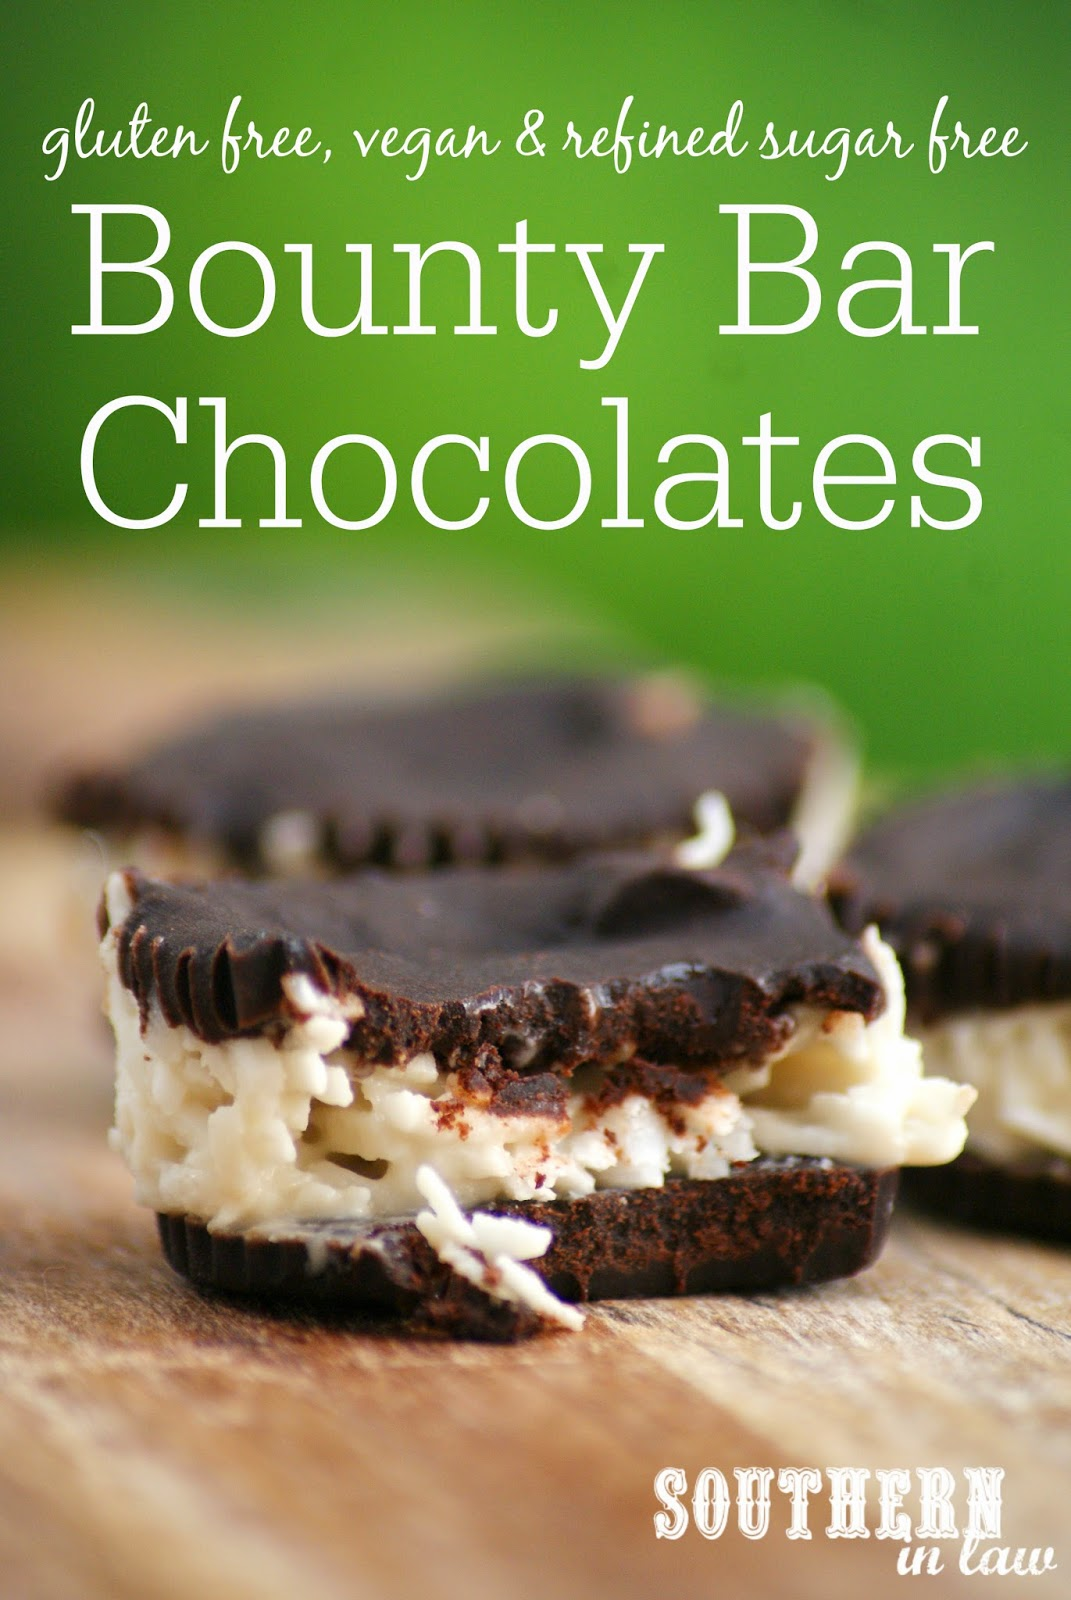 Homemade Gluten Free Bounty Bar Chocolate Cups Recipe - gluten free, refined sugar free, healthy, vegan, egg free, dairy free